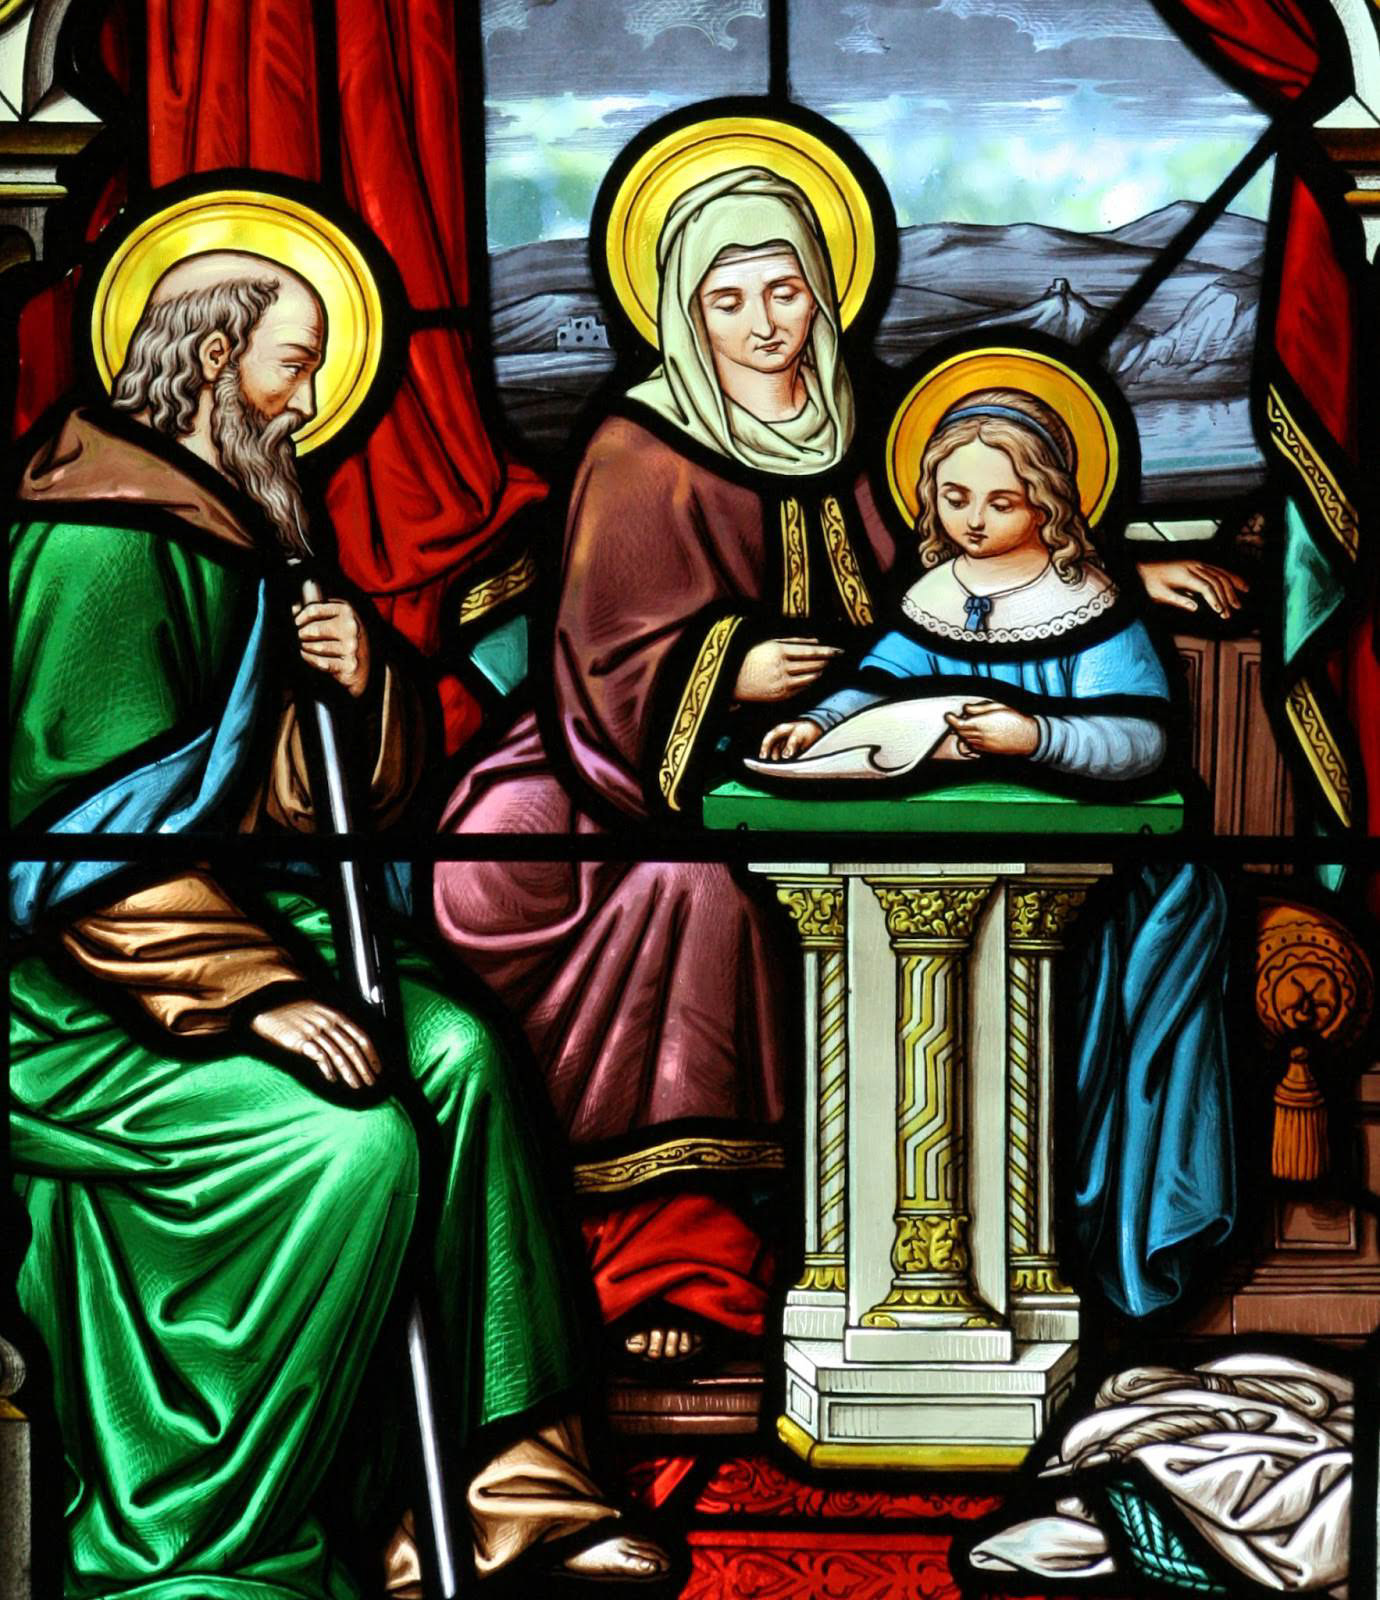 saint joachim buddhist personals Buddhist views on marriage in buddhism, marriage is regarded as entirely a personal, individual concern and not as a religious duty.